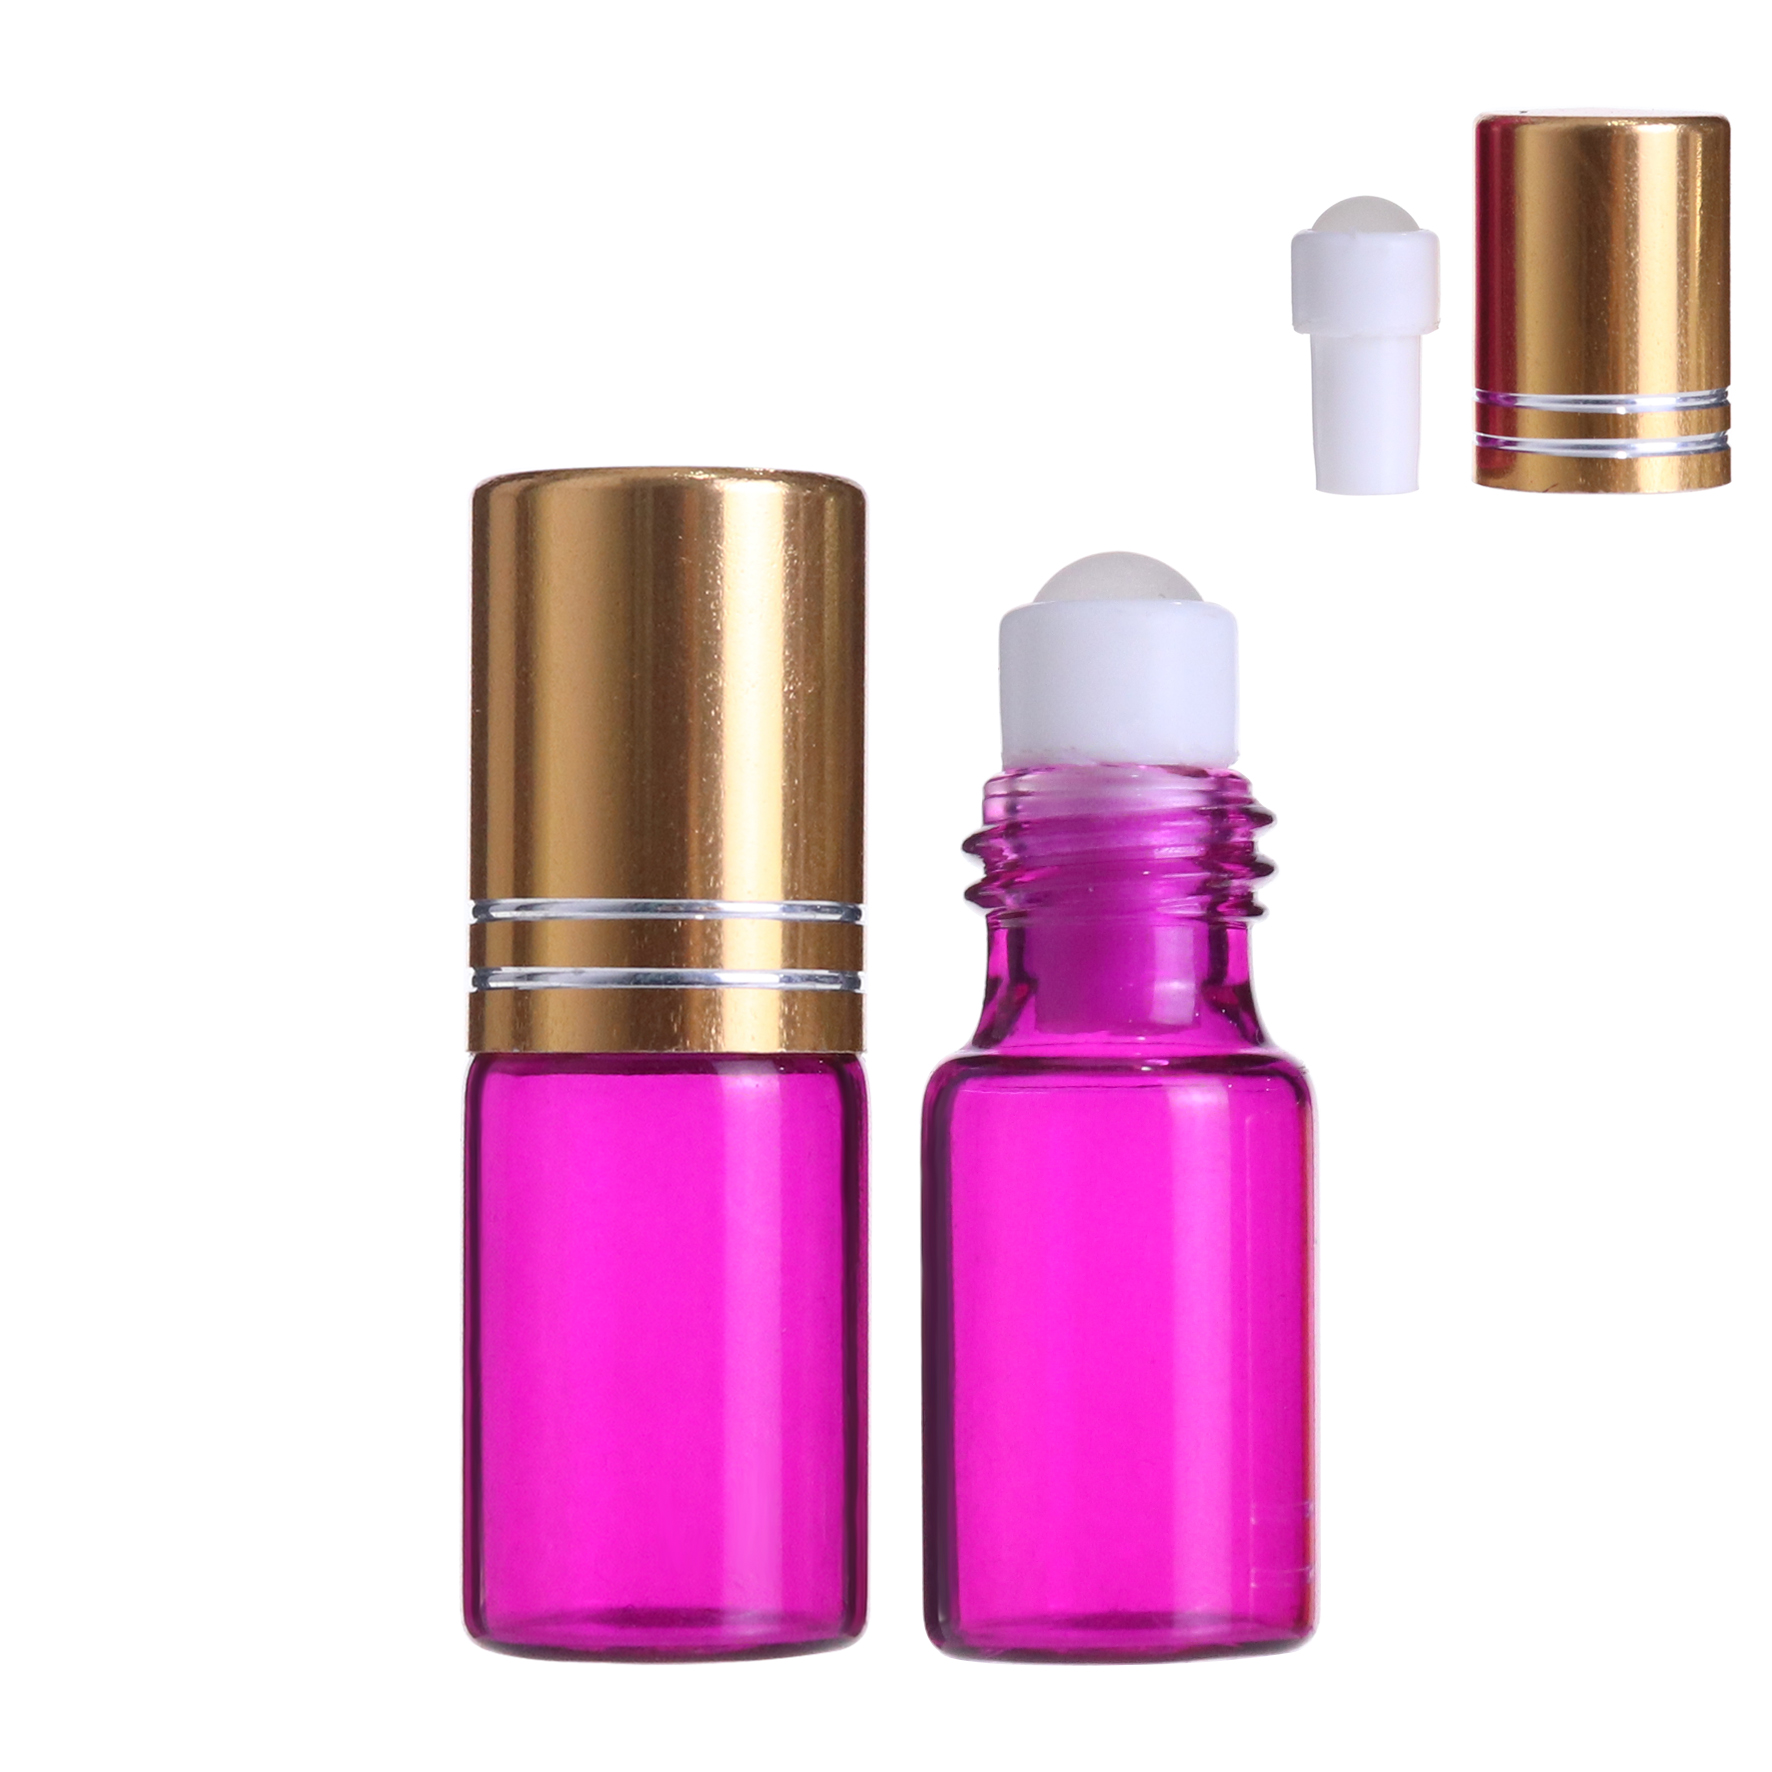 Pink Essential Oil Roller glass ball Bottles 3ml Aromatherapy Glass Roll on perfume Bottle with gold cap